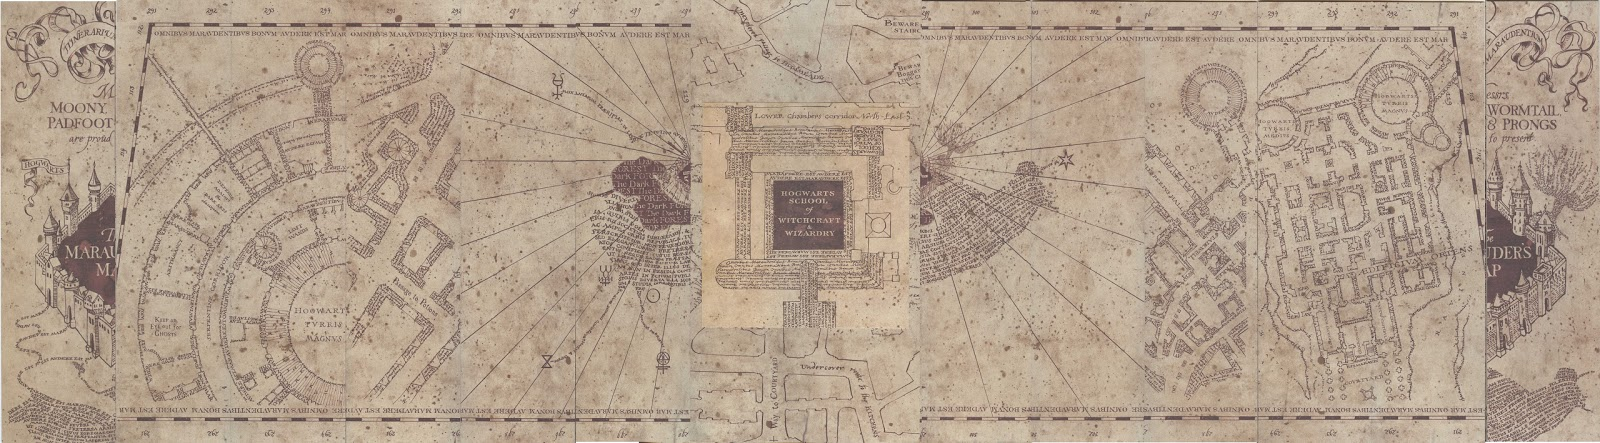 Genius image regarding marauders map printable